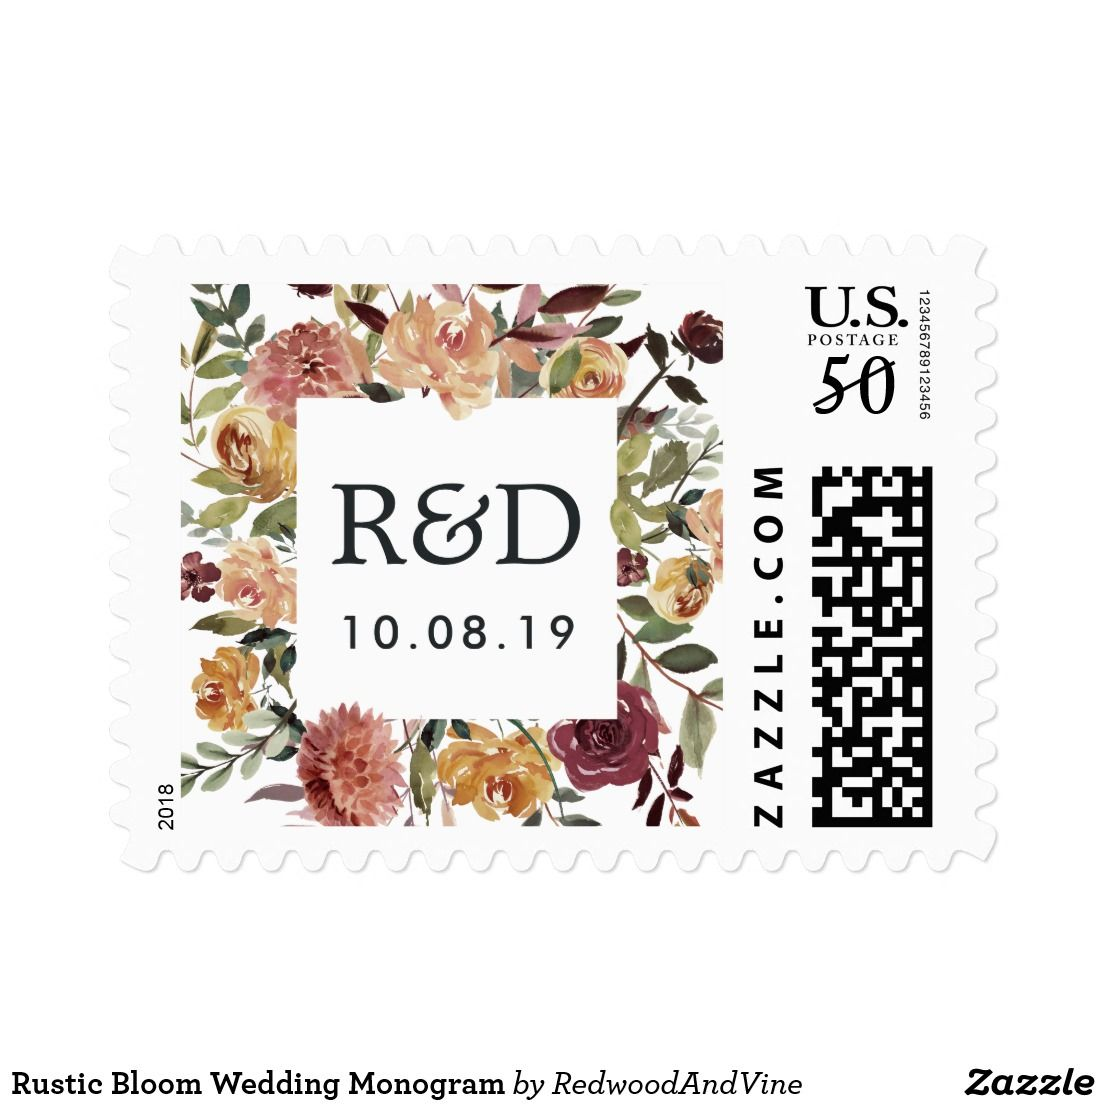 Rustic Bloom Wedding Monogram Postage Wedding Monograms Wedding